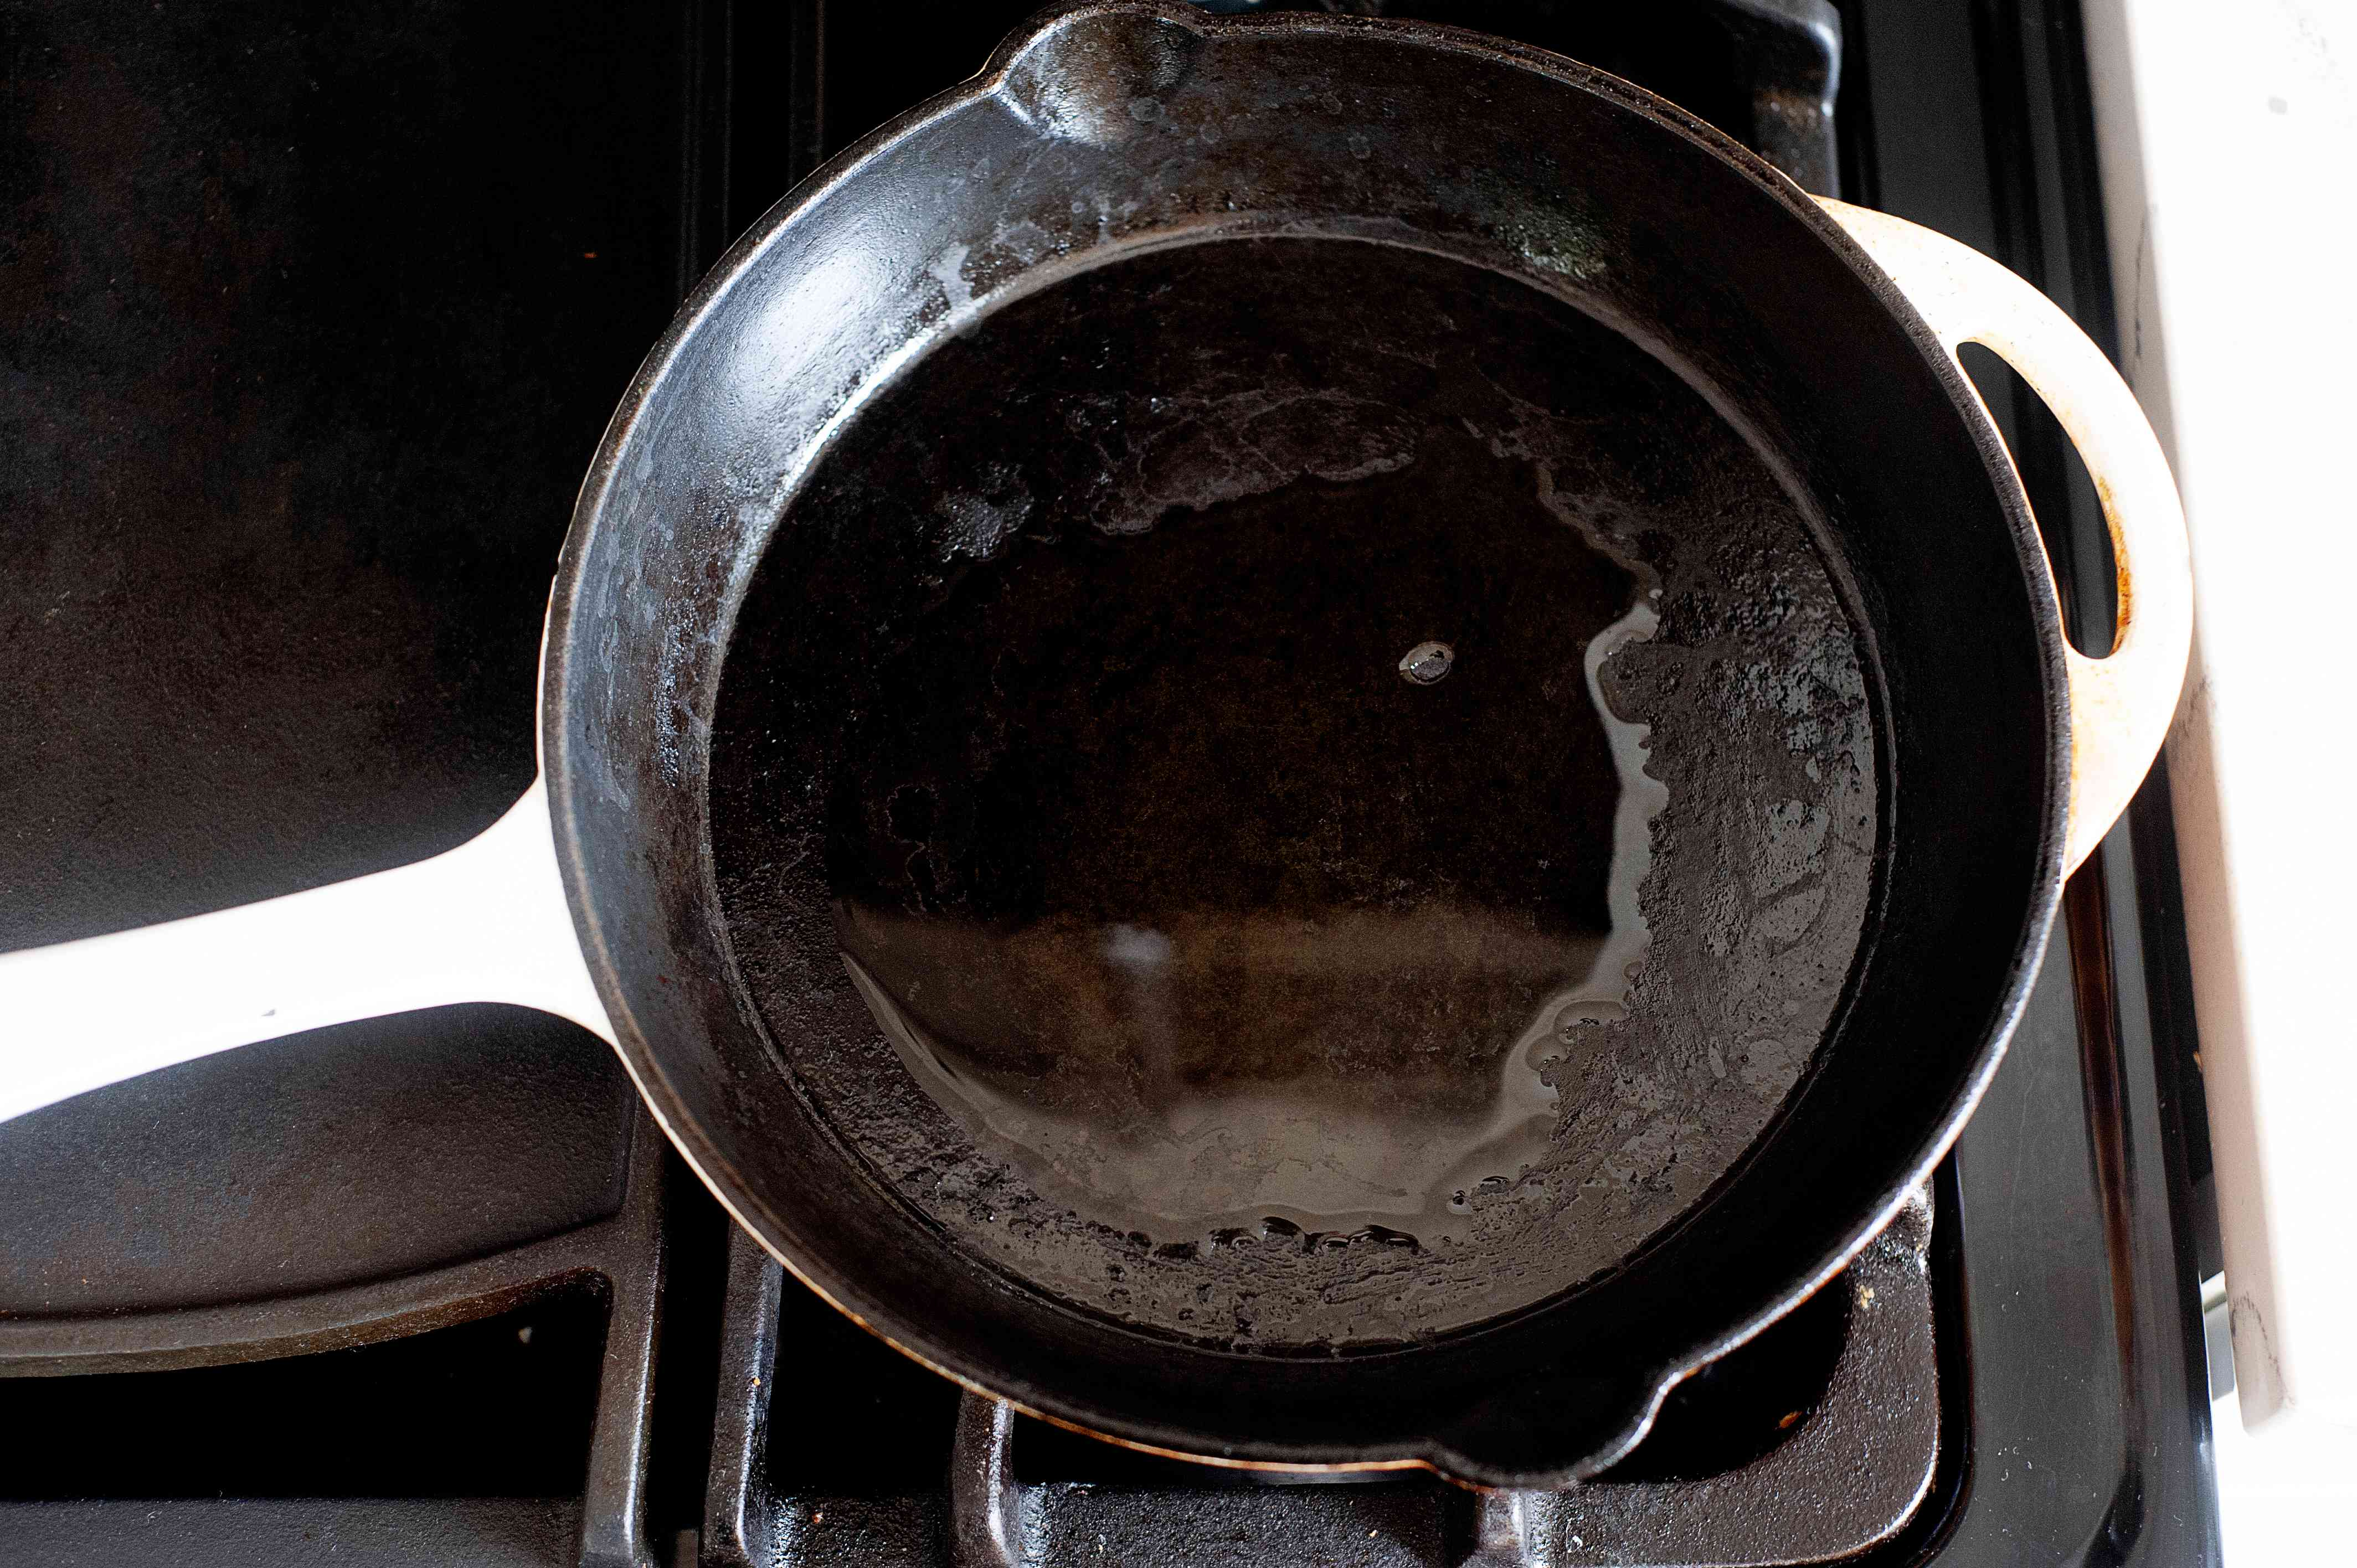 Skillet on the stove with oil in it to make a Socca Flatbread Recipe.